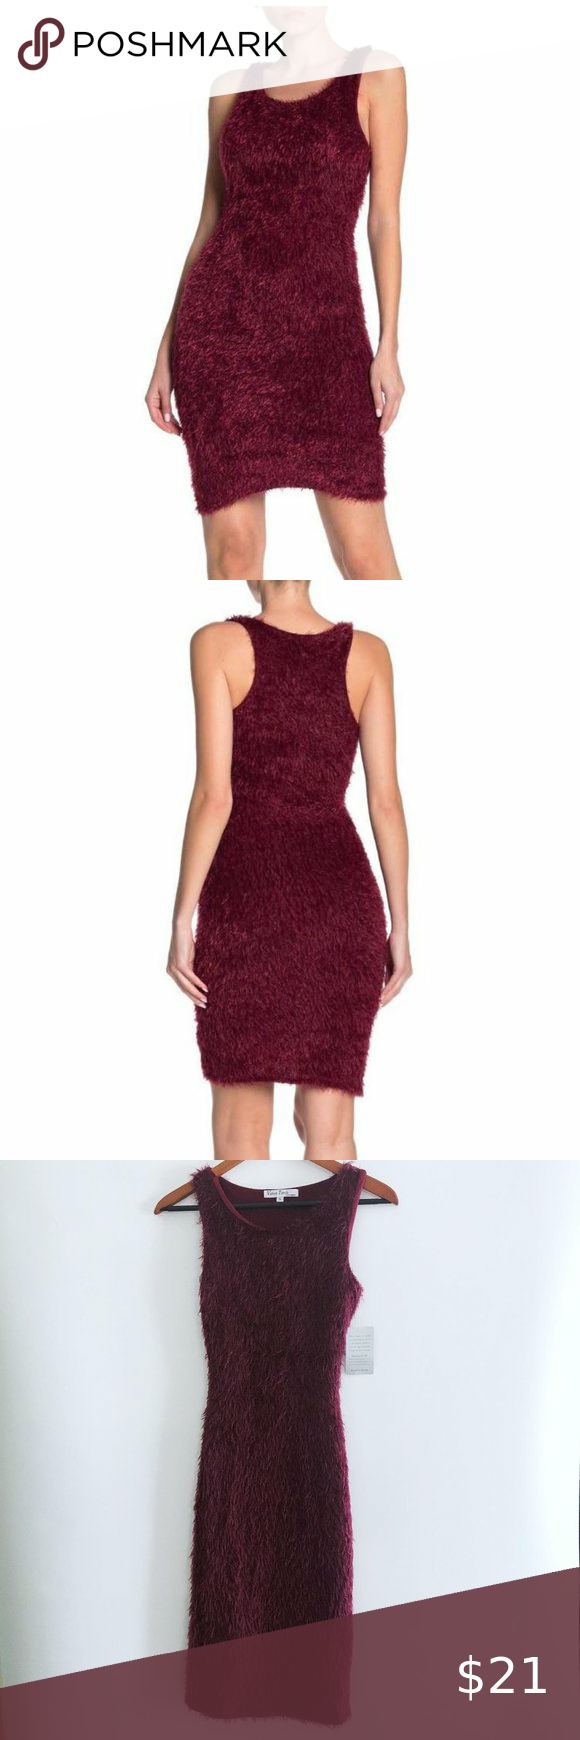 Velvet Torch Feather Hacci Racerback Midi Dress Feather Hacci Textures This Sleeveless Bodycon Racerback Midi Dress Sleeveless Bodycon Dress Velvet Torch Dress [ 1740 x 580 Pixel ]